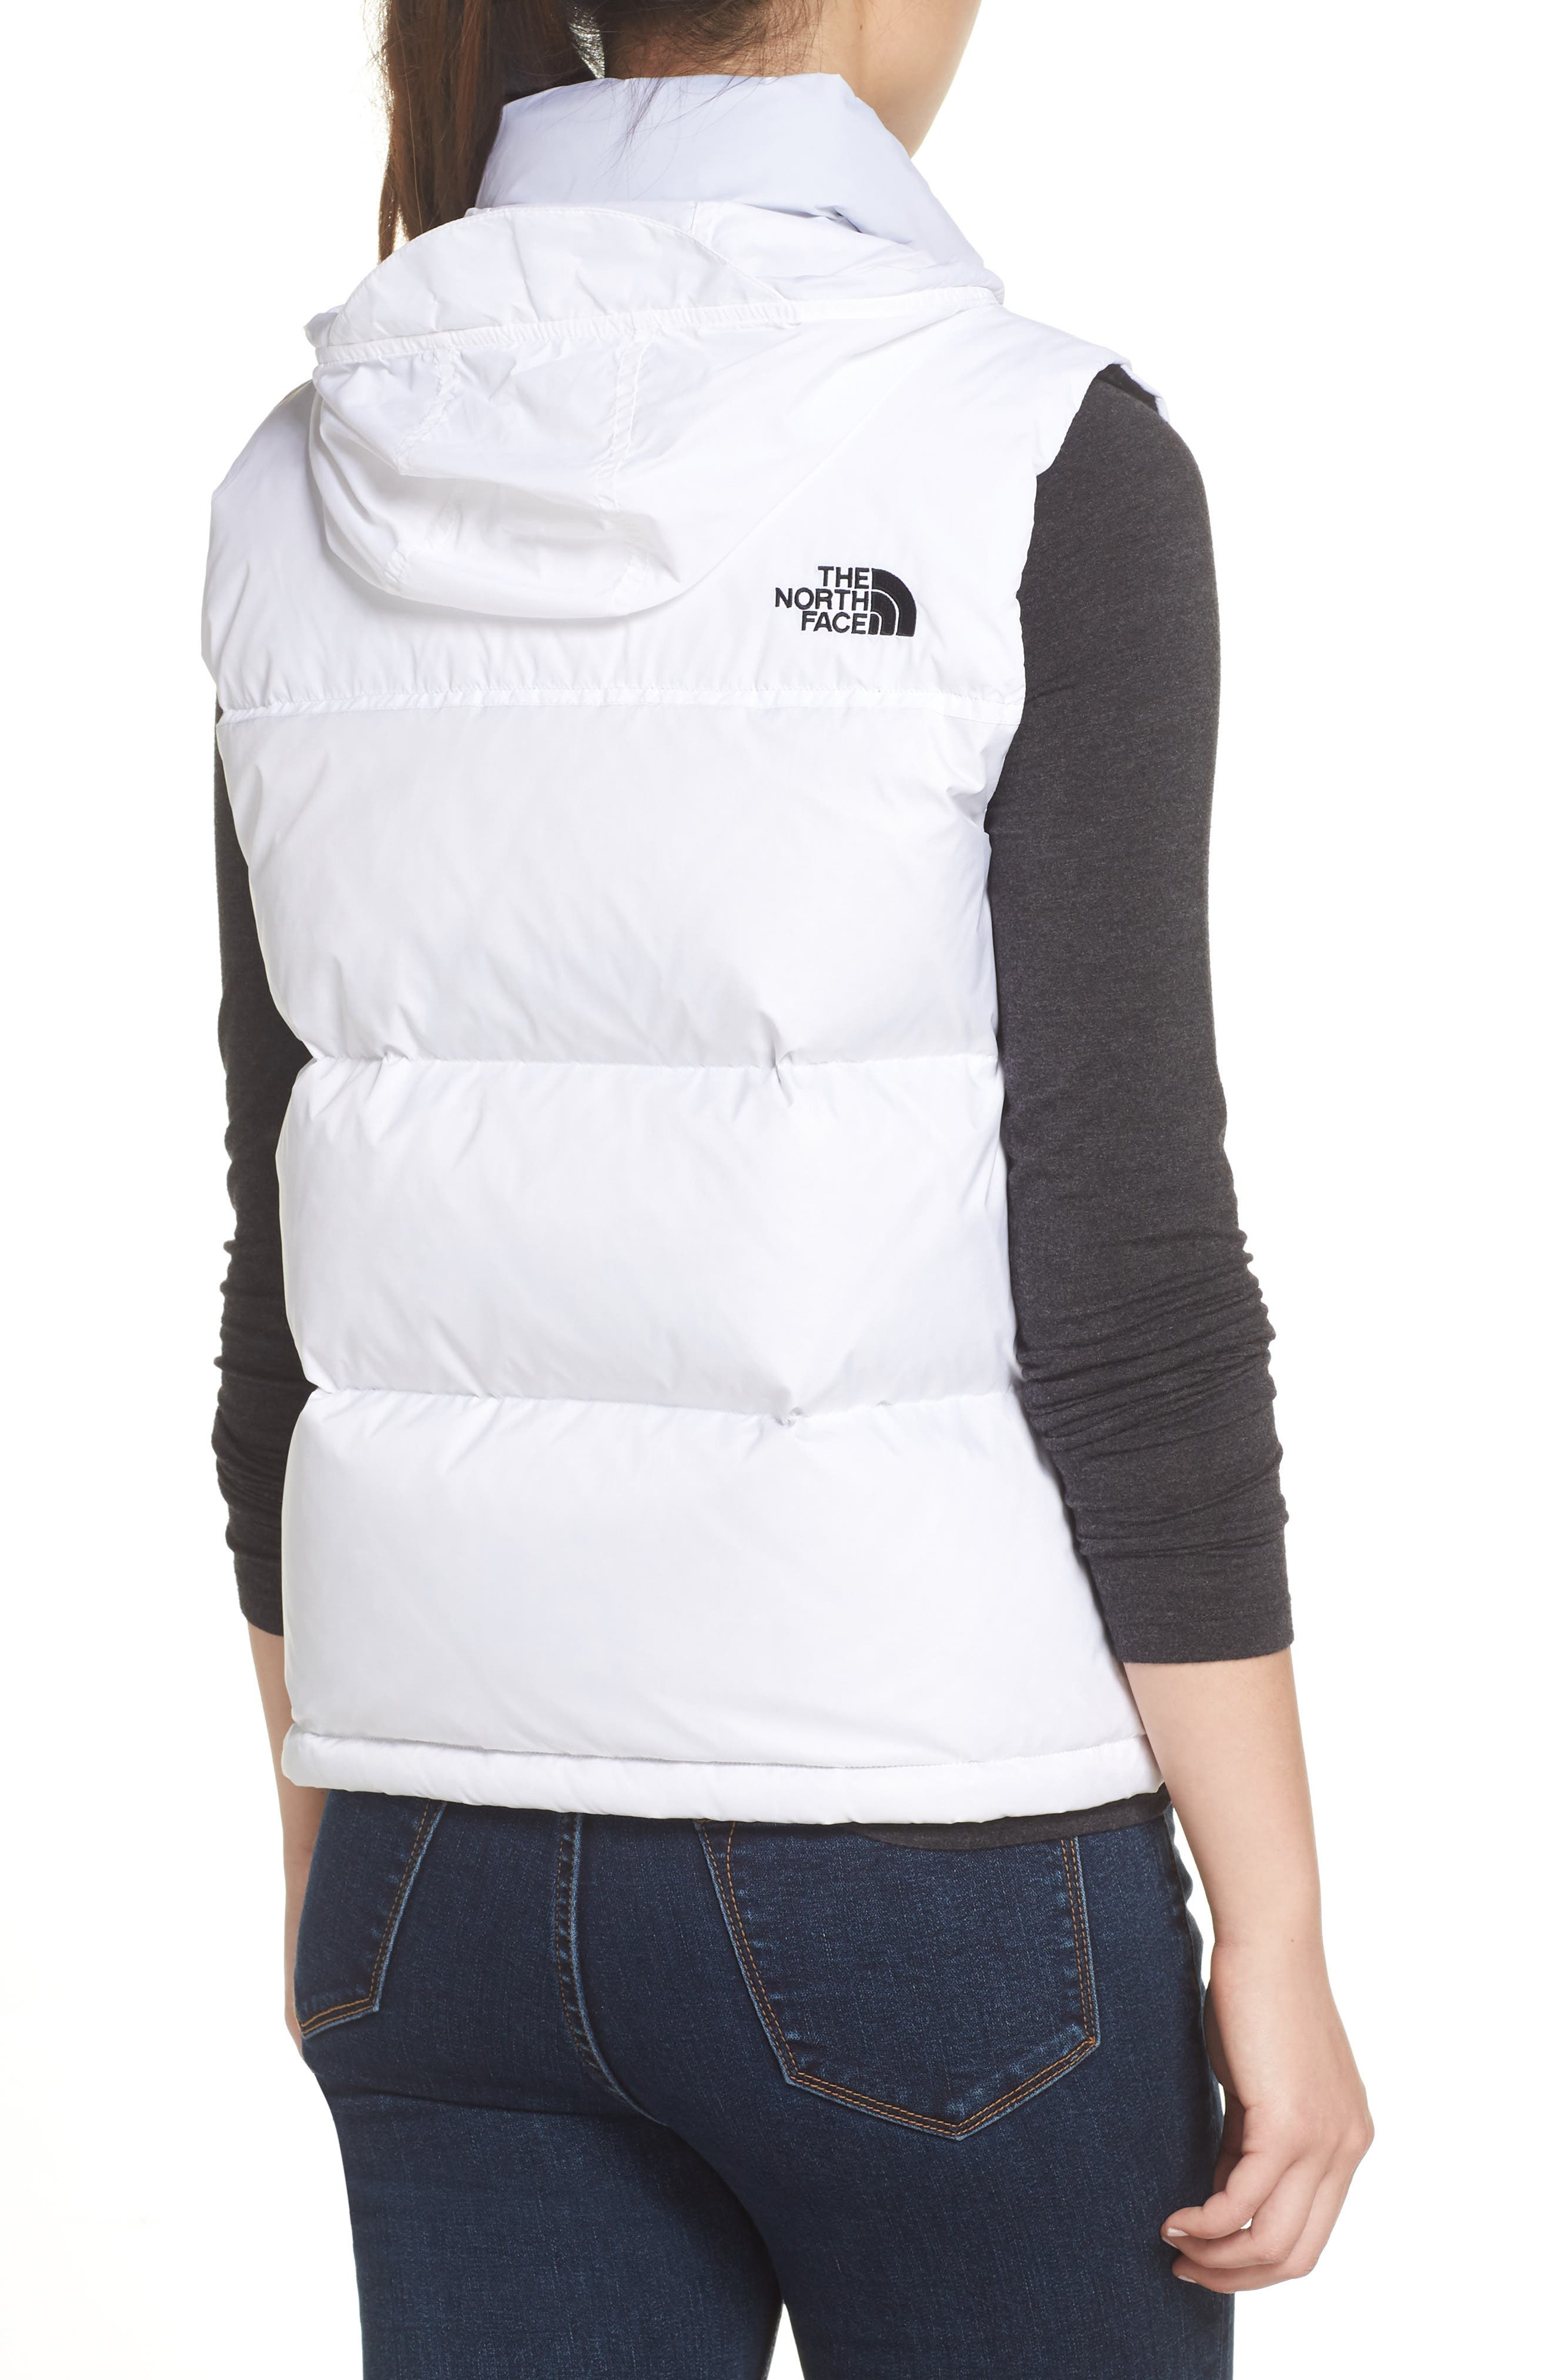 THE NORTH FACE,                             Nuptse 1996 Packable 700-Fill Power Down Vest,                             Alternate thumbnail 2, color,                             TNF WHITE